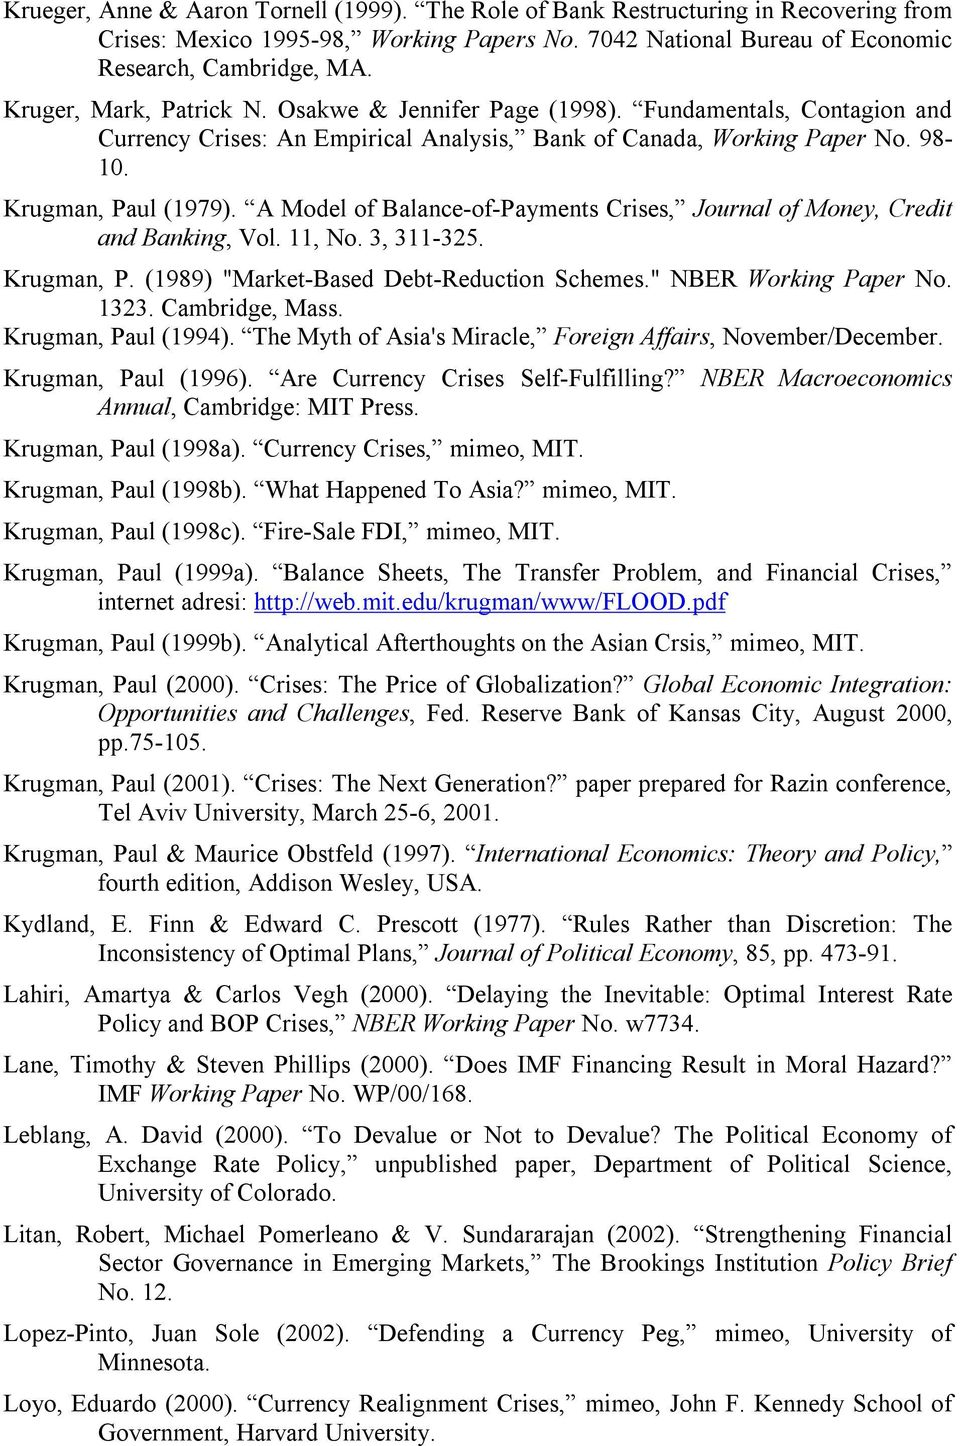 "A Model of Balance-of-Payments Crises, Journal of Money, Credit and Banking, Vol. 11, No. 3, 311-325. Krugman, P. (1989) ""Market-Based Debt-Reduction Schemes."" NBER Working Paper No. 1323."